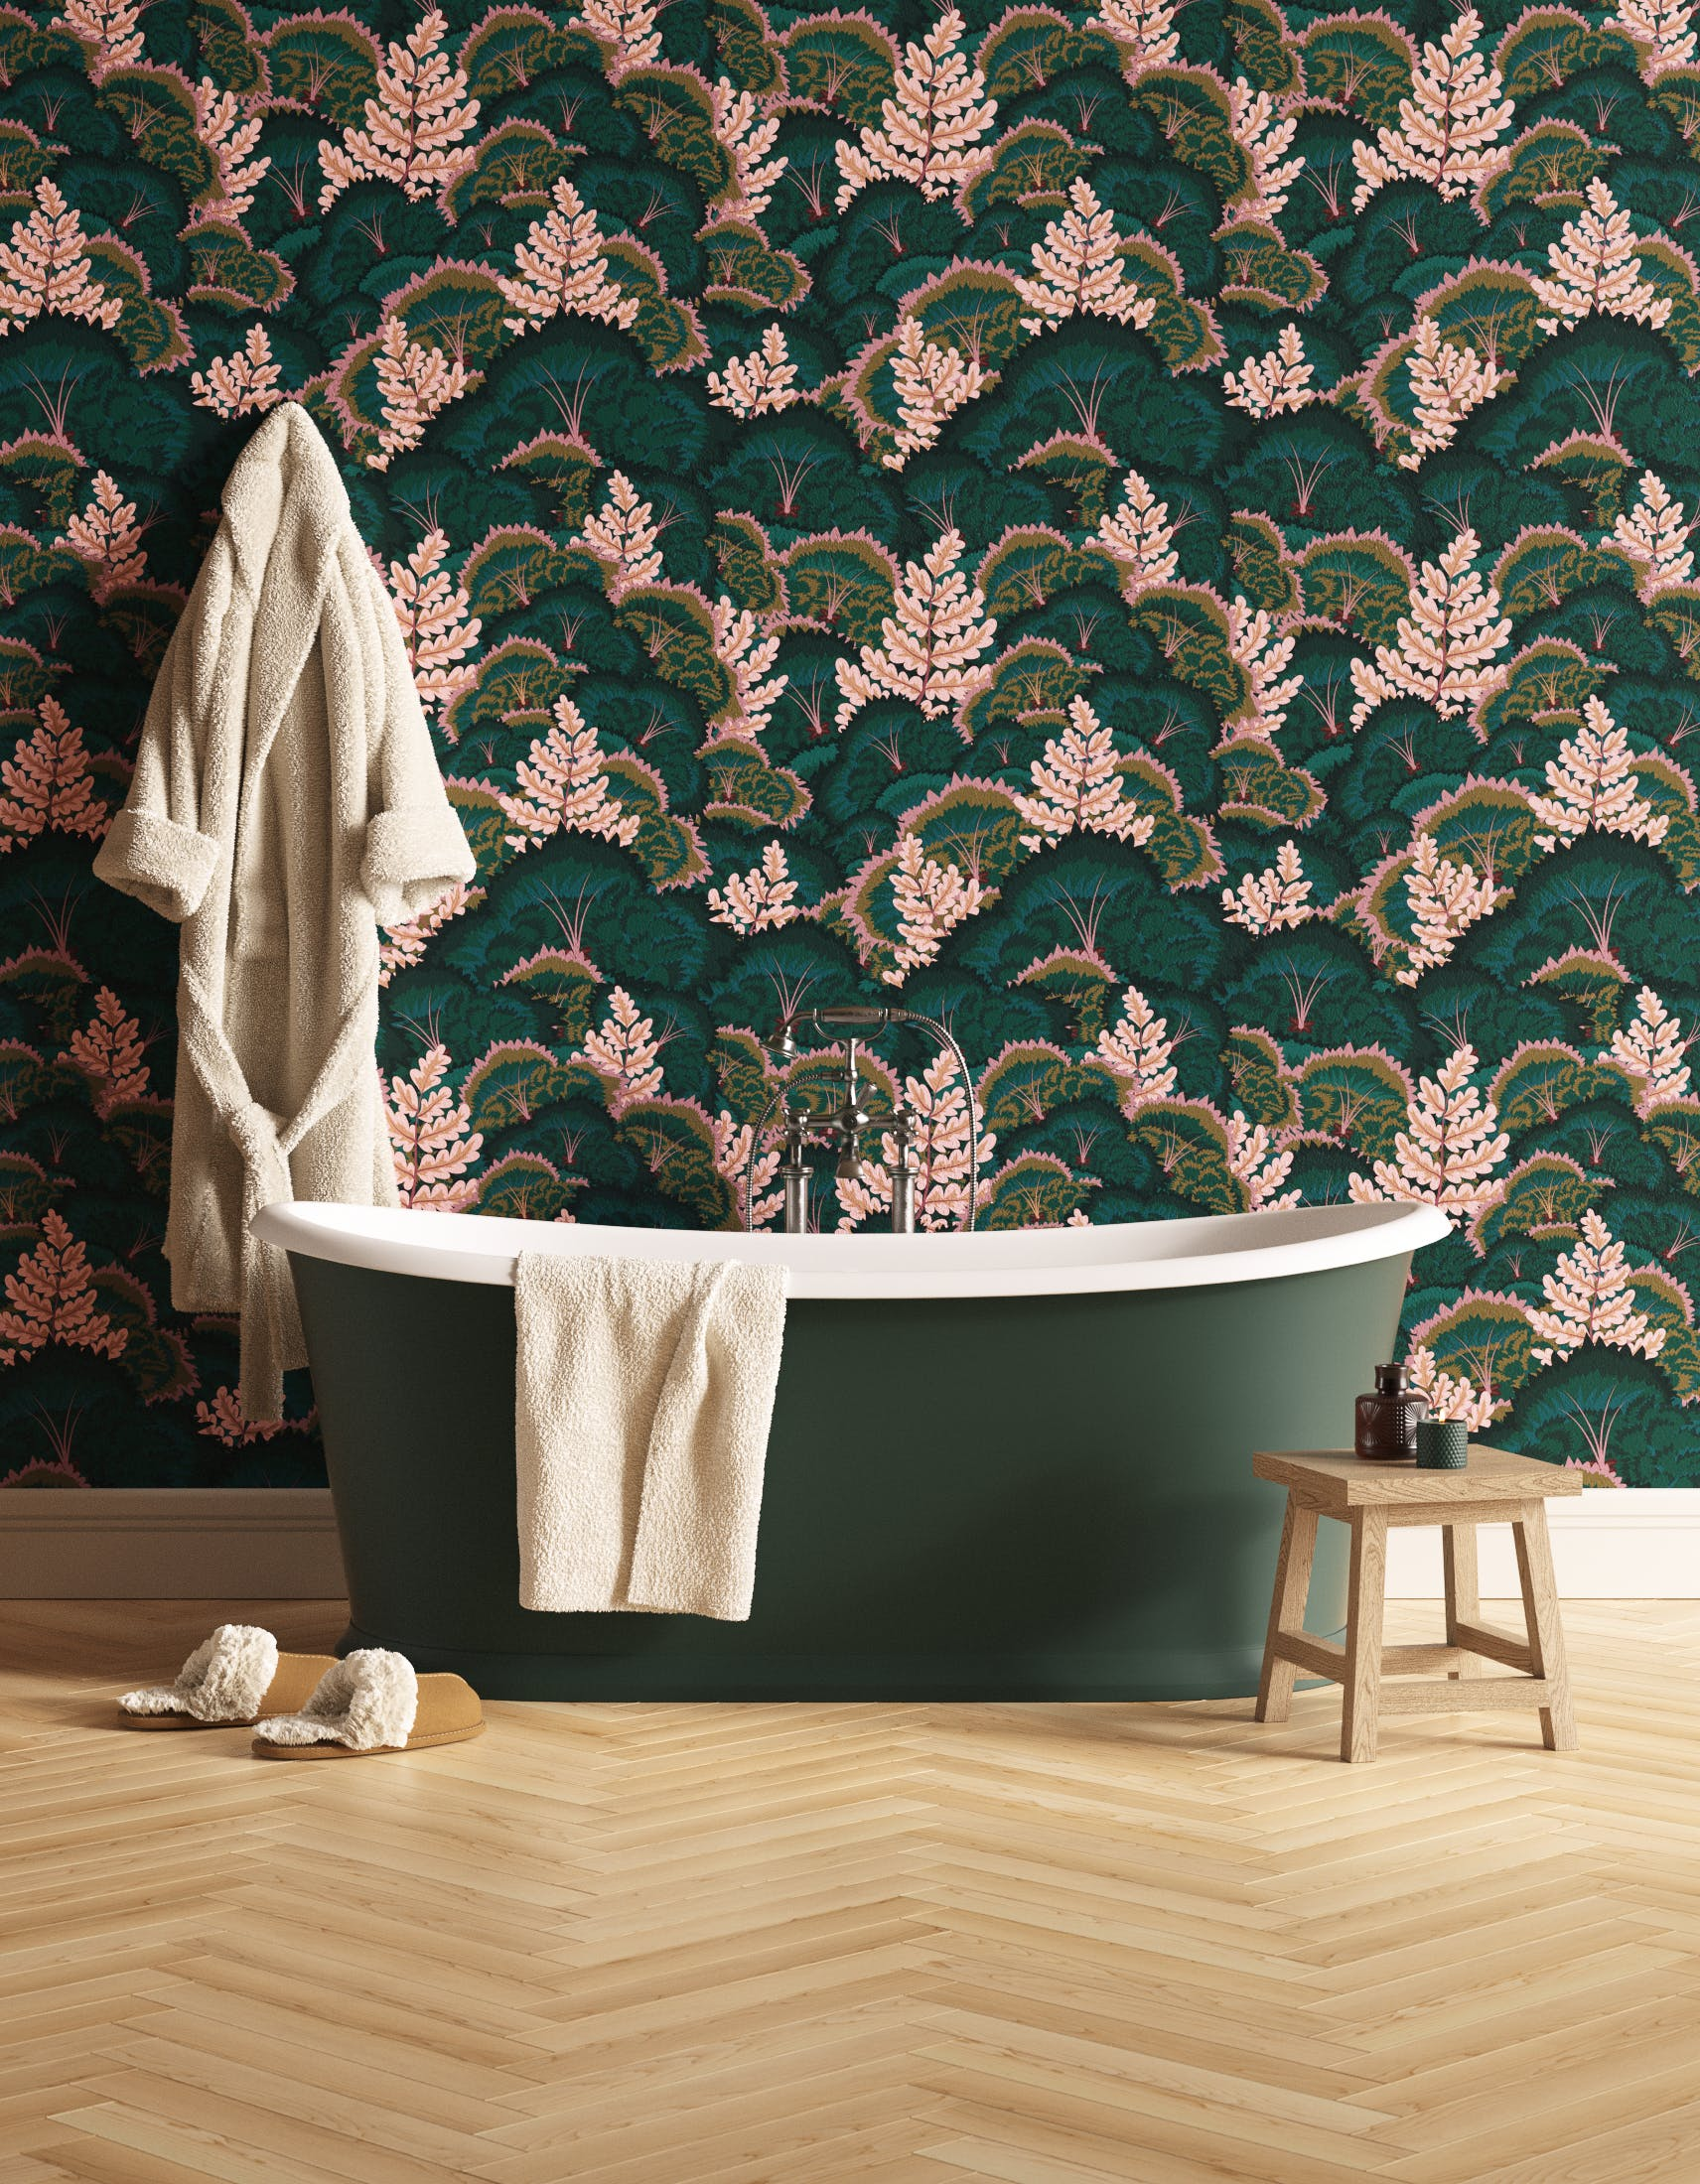 Bathroom decorated with Lick Electric Poppies 02, a dark green floral wallpaper